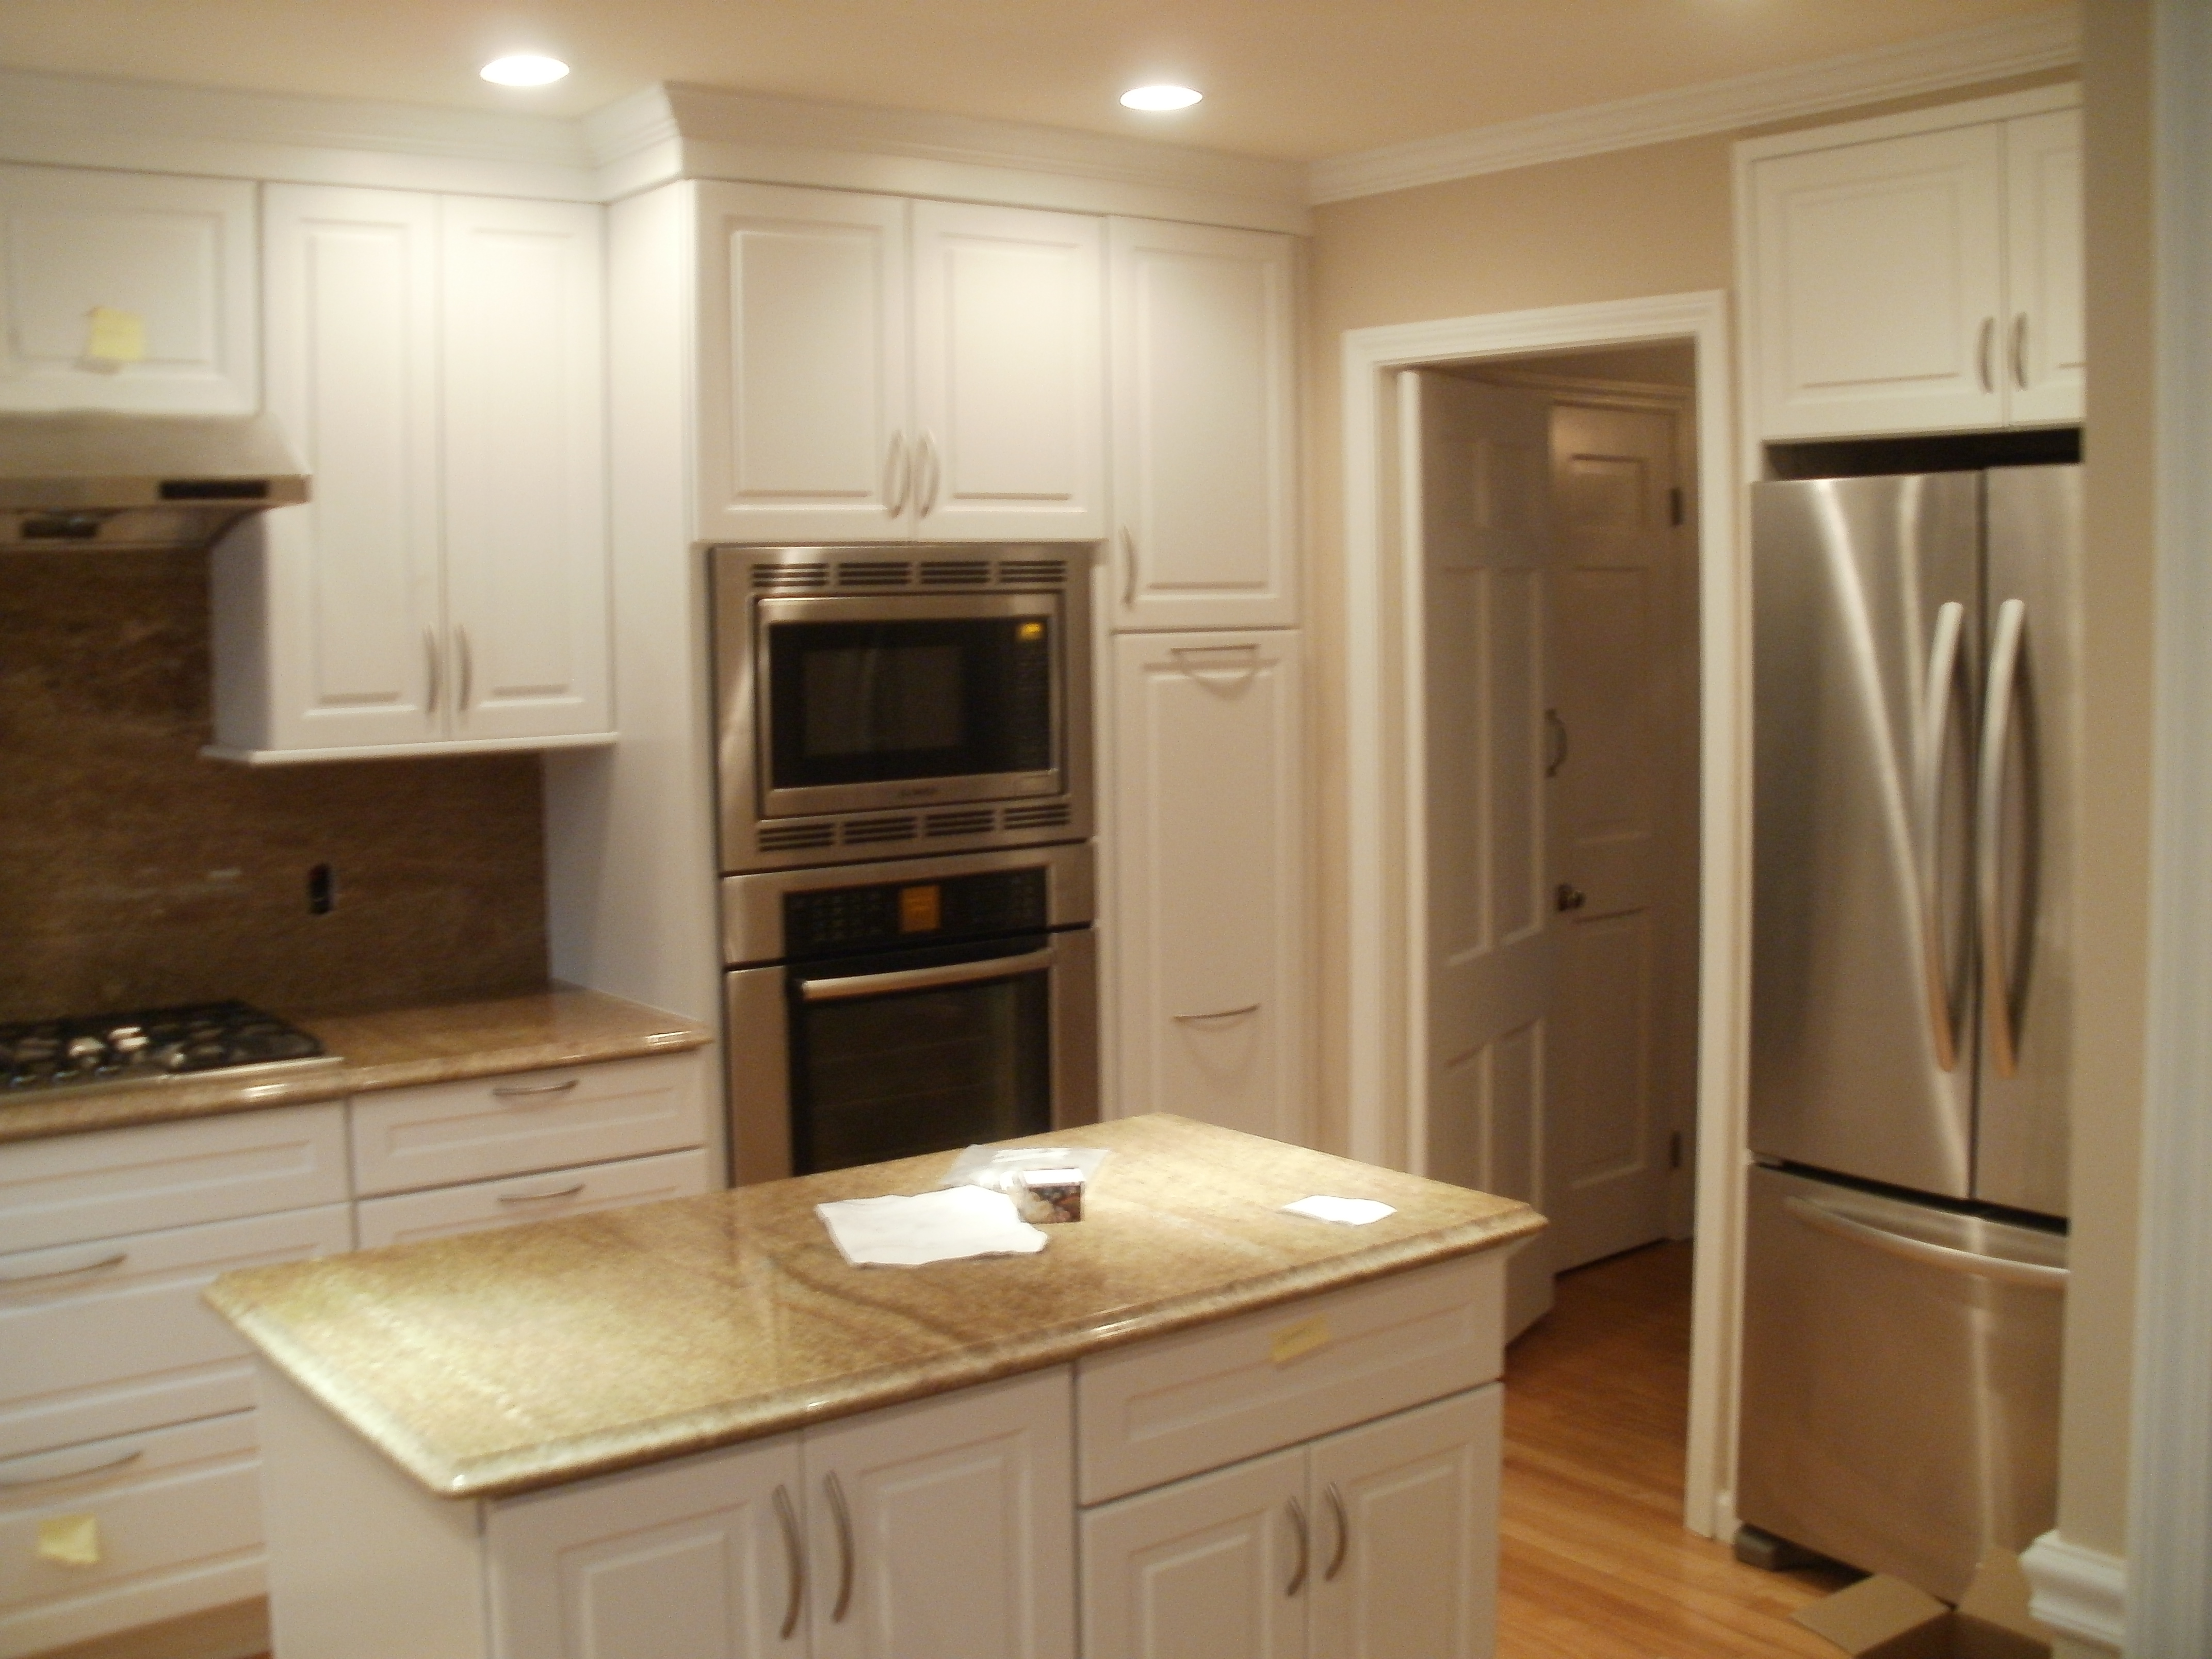 Case study 4 greenwich ct luxury kitchen remodel for Remodeling your kitchen